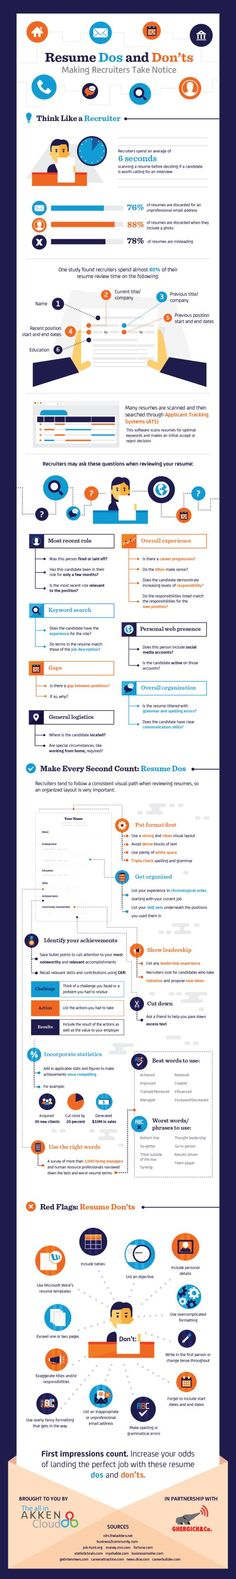 How recruiters read your resume (so you can construct it accordingly) [Infographic] - Advice